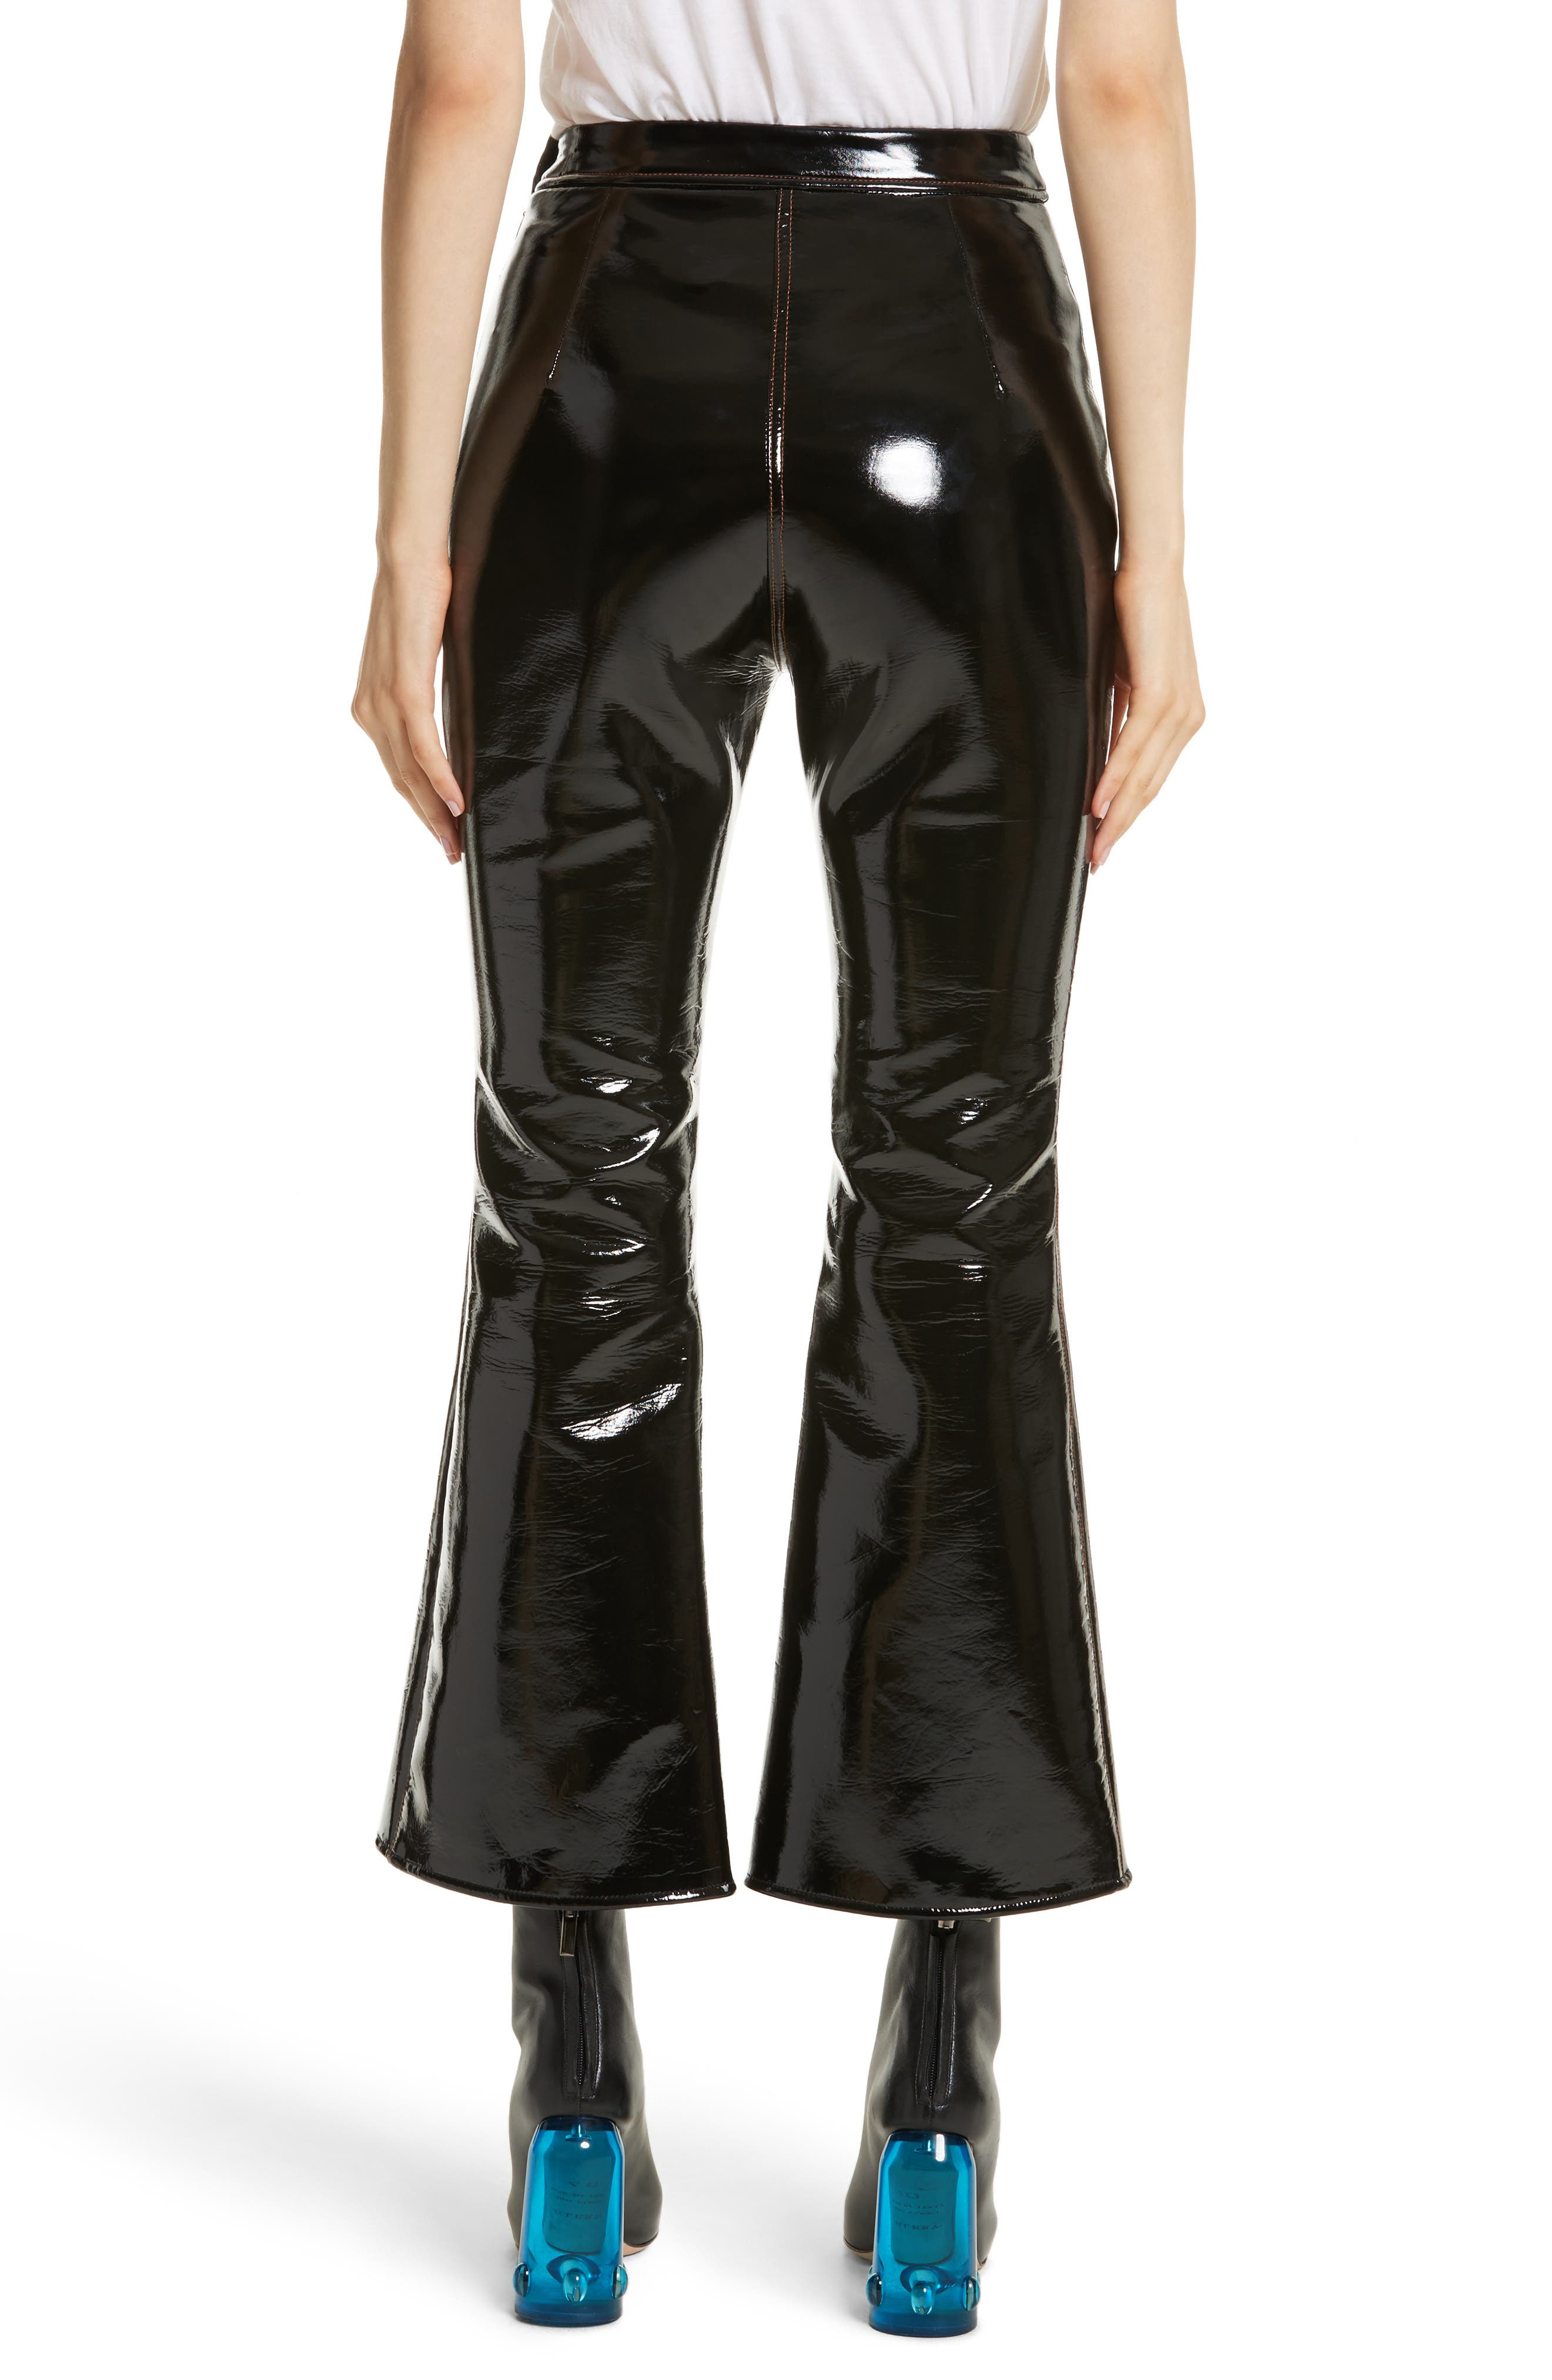 Outlaw Topstitched Crop Flare PVC Pants,                             Alternate thumbnail 2, color,                             Black